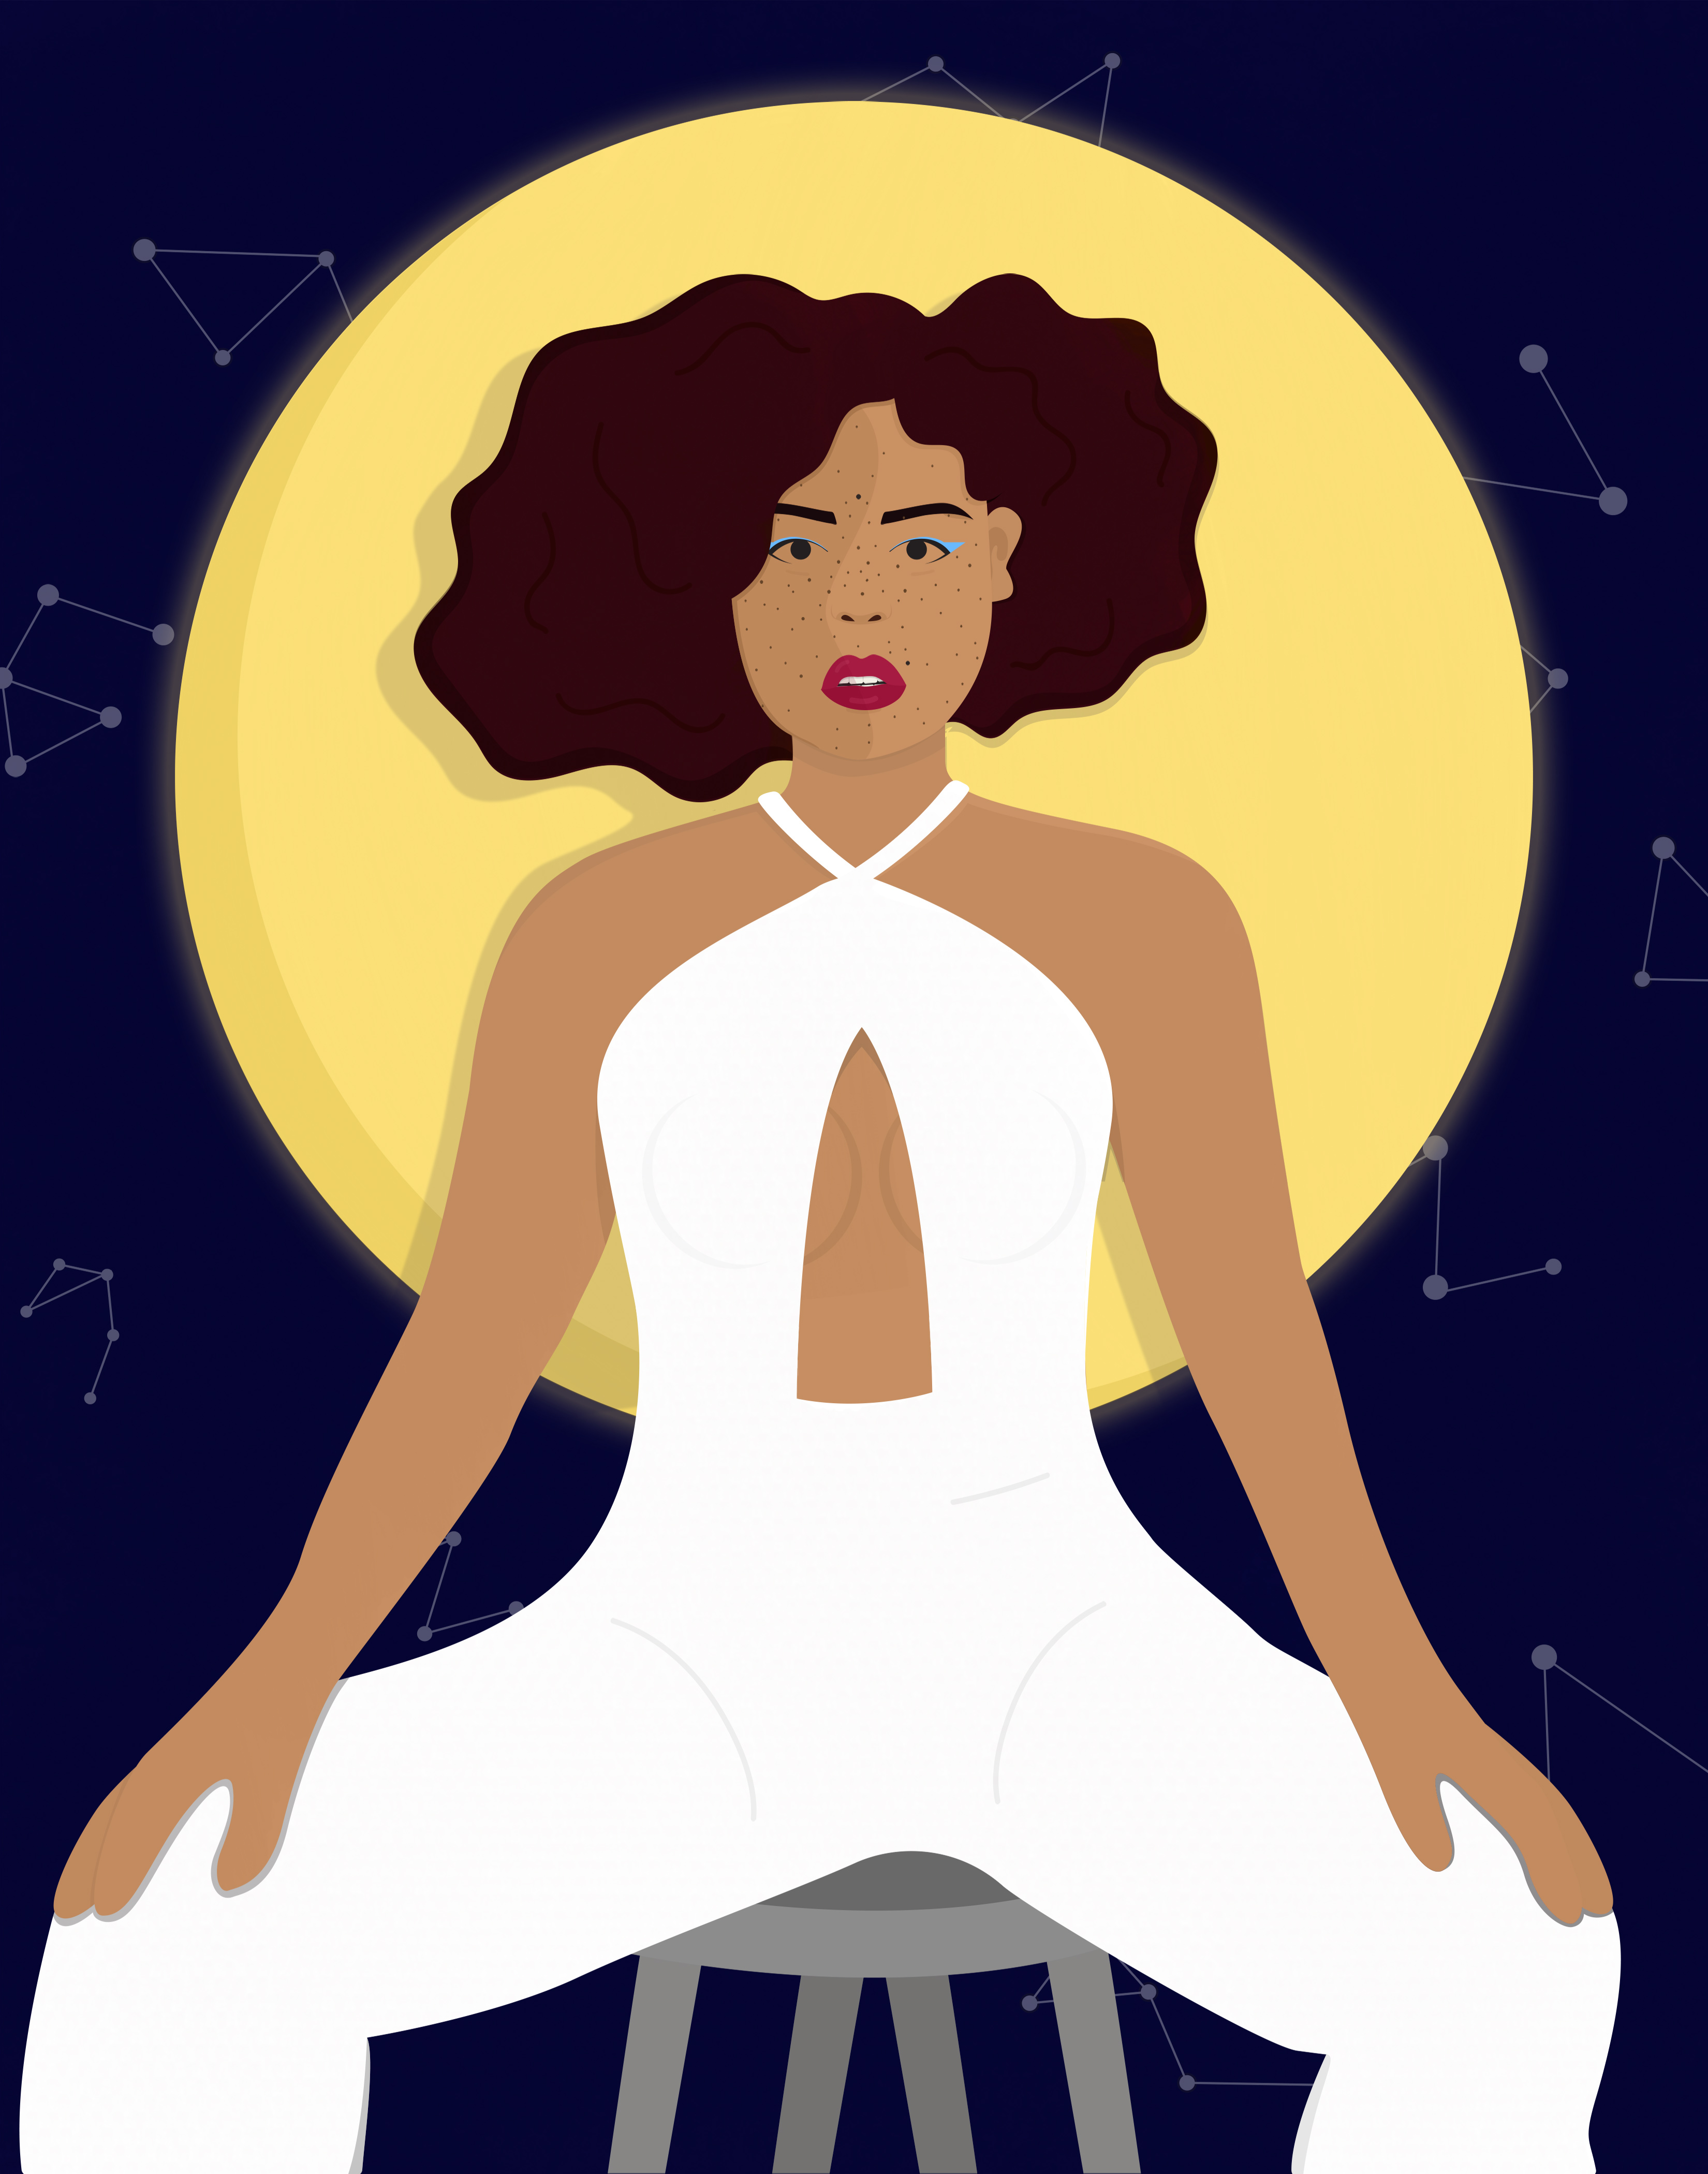 Black woman in a white jumpsuit sits on a stool in front of a large yellow moon.